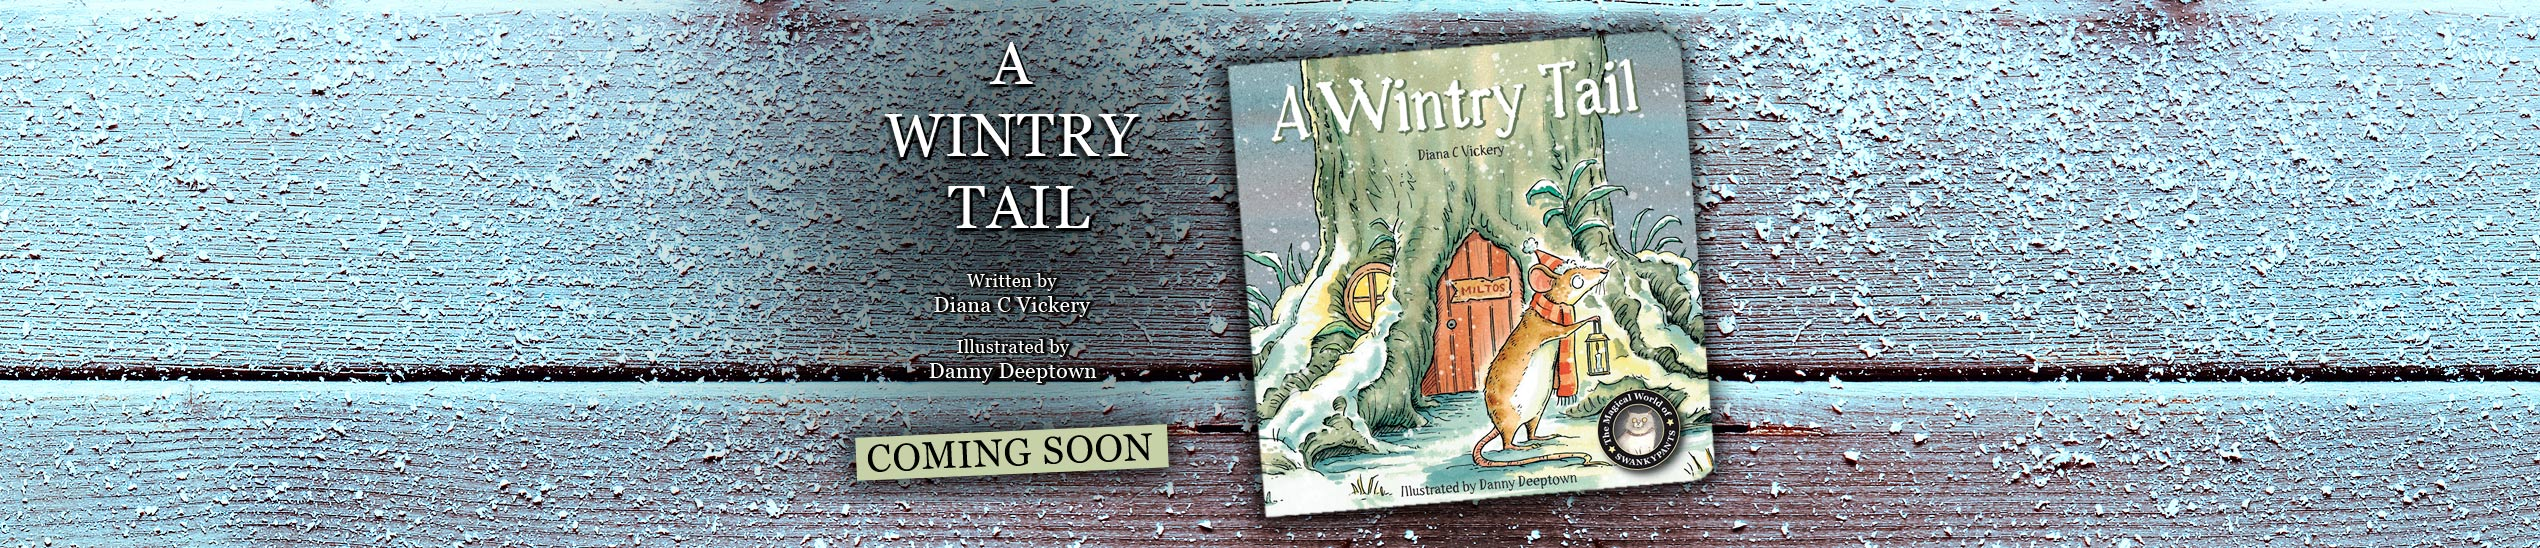 a-wintry-tail-